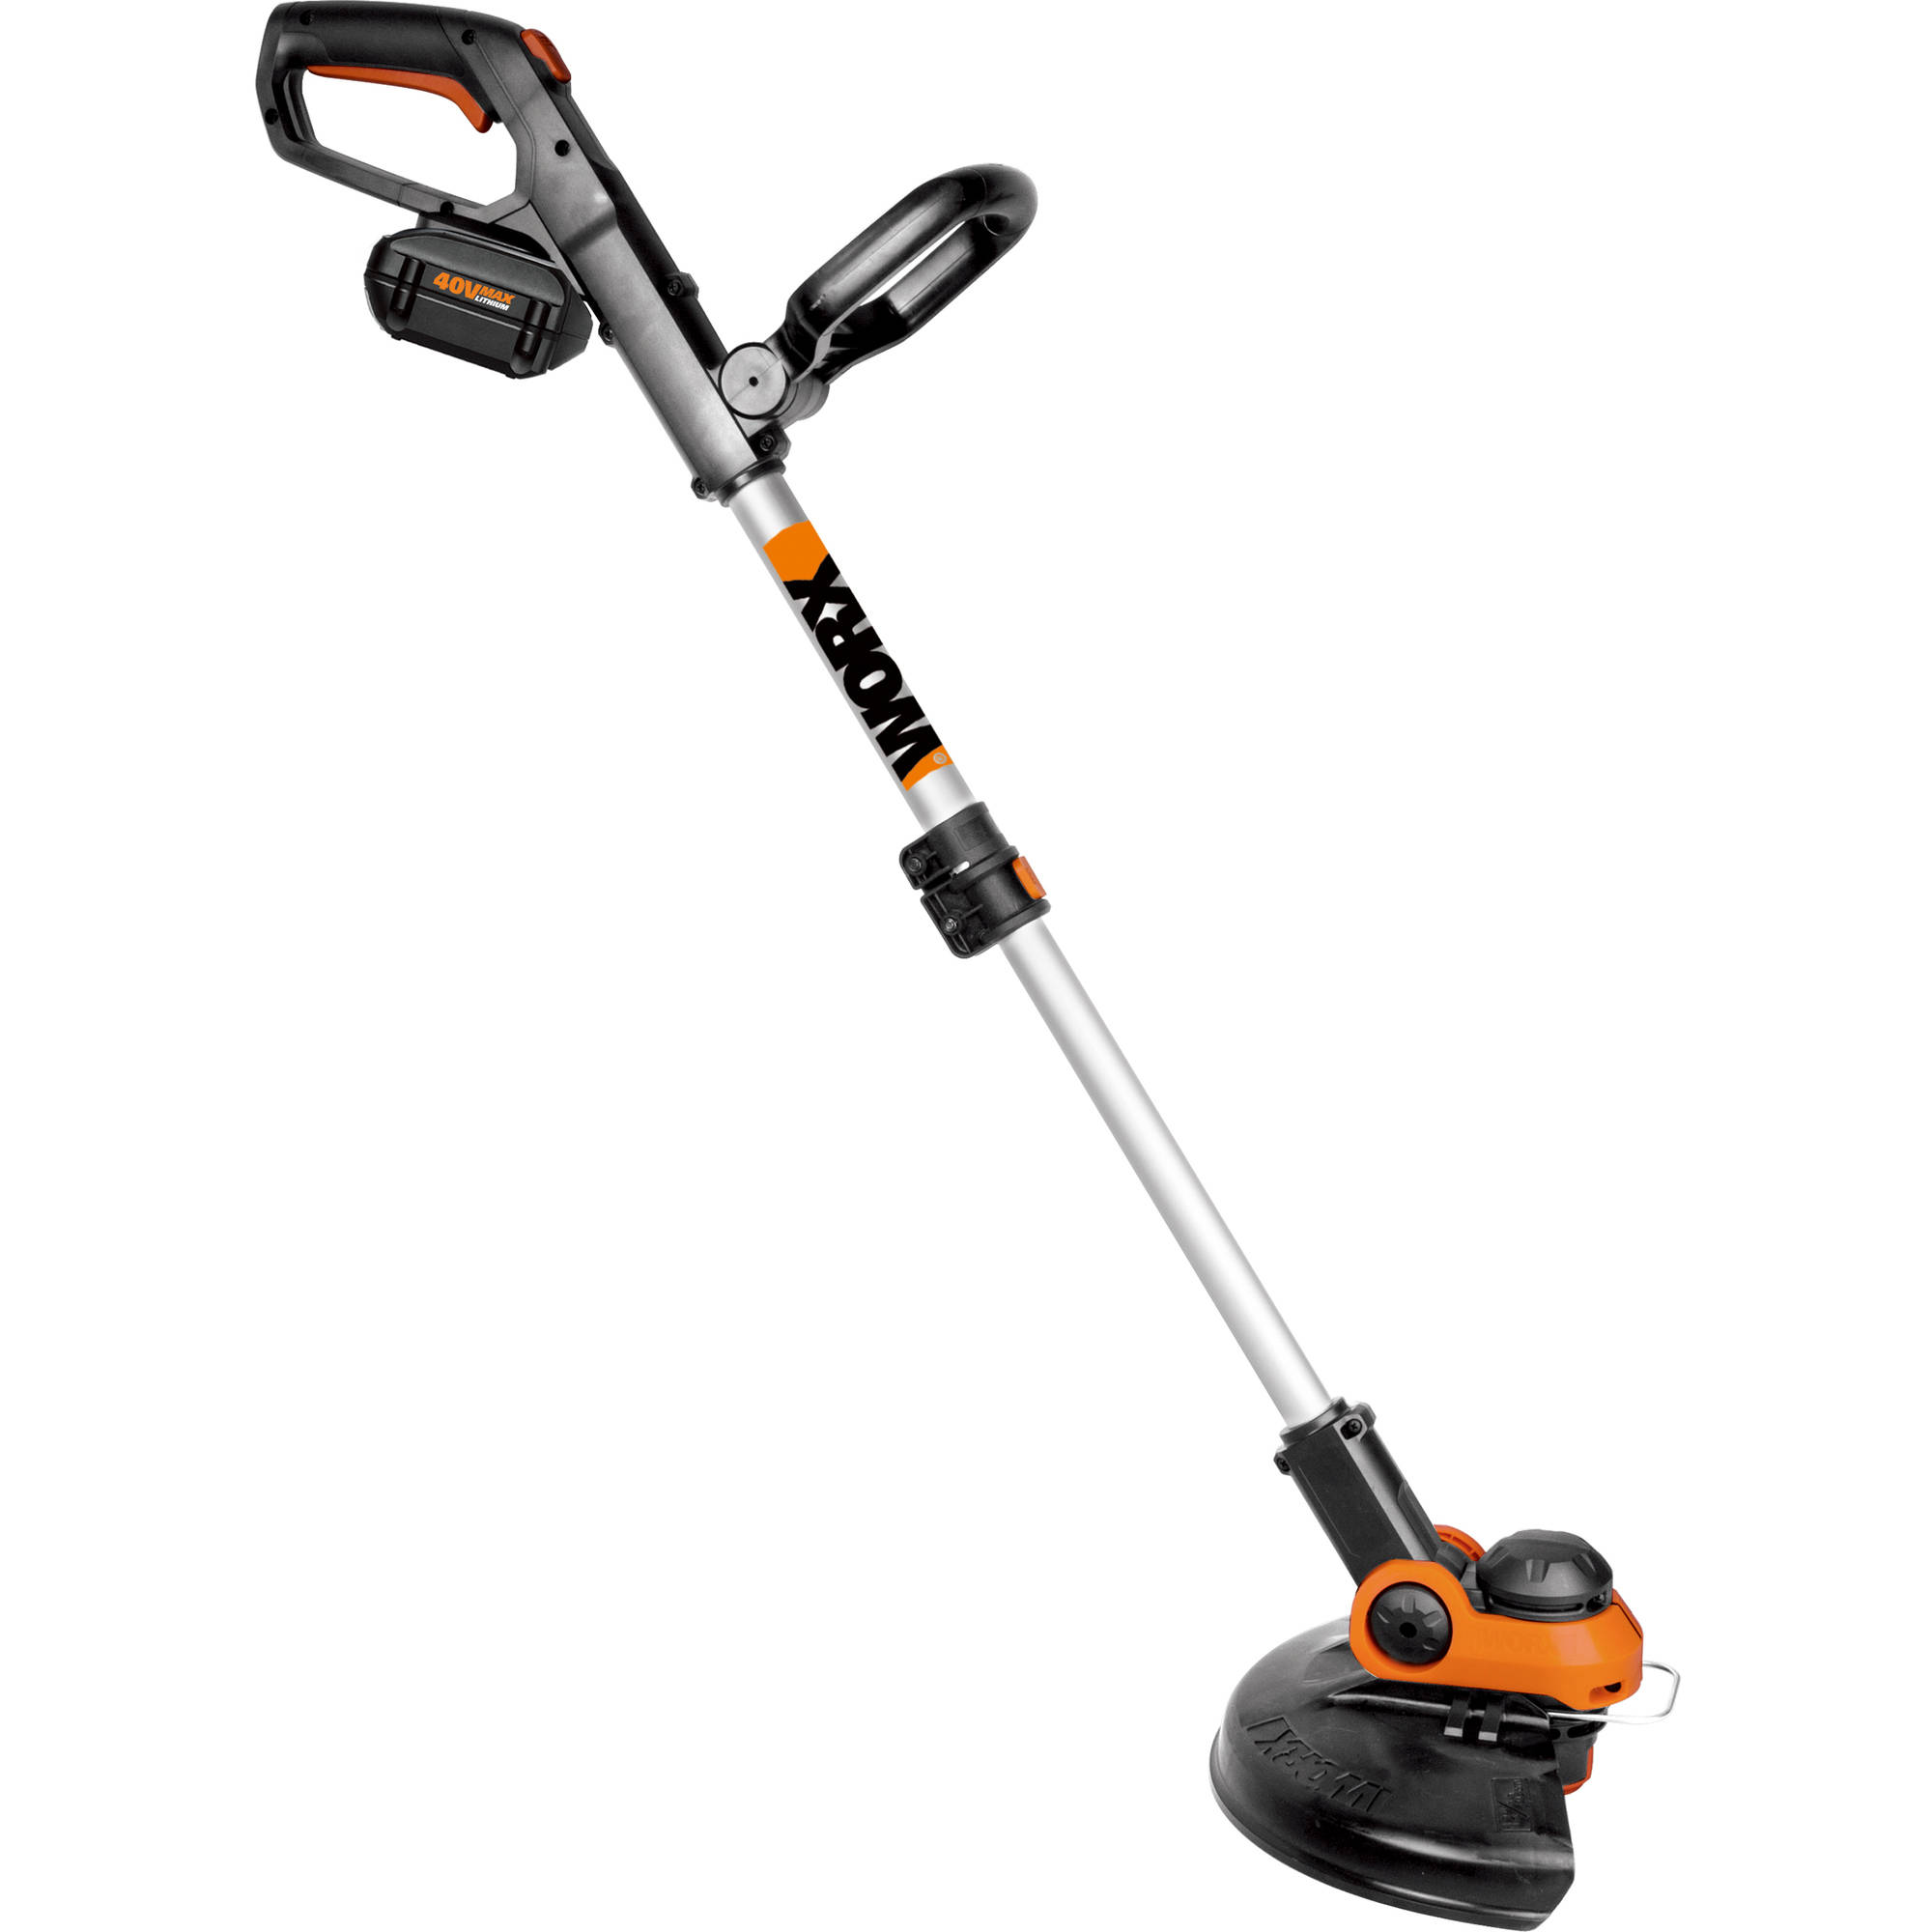 "Worx 40V Li-ion 12"" Cordless Grass Trimmer Edger by Positec Technology"